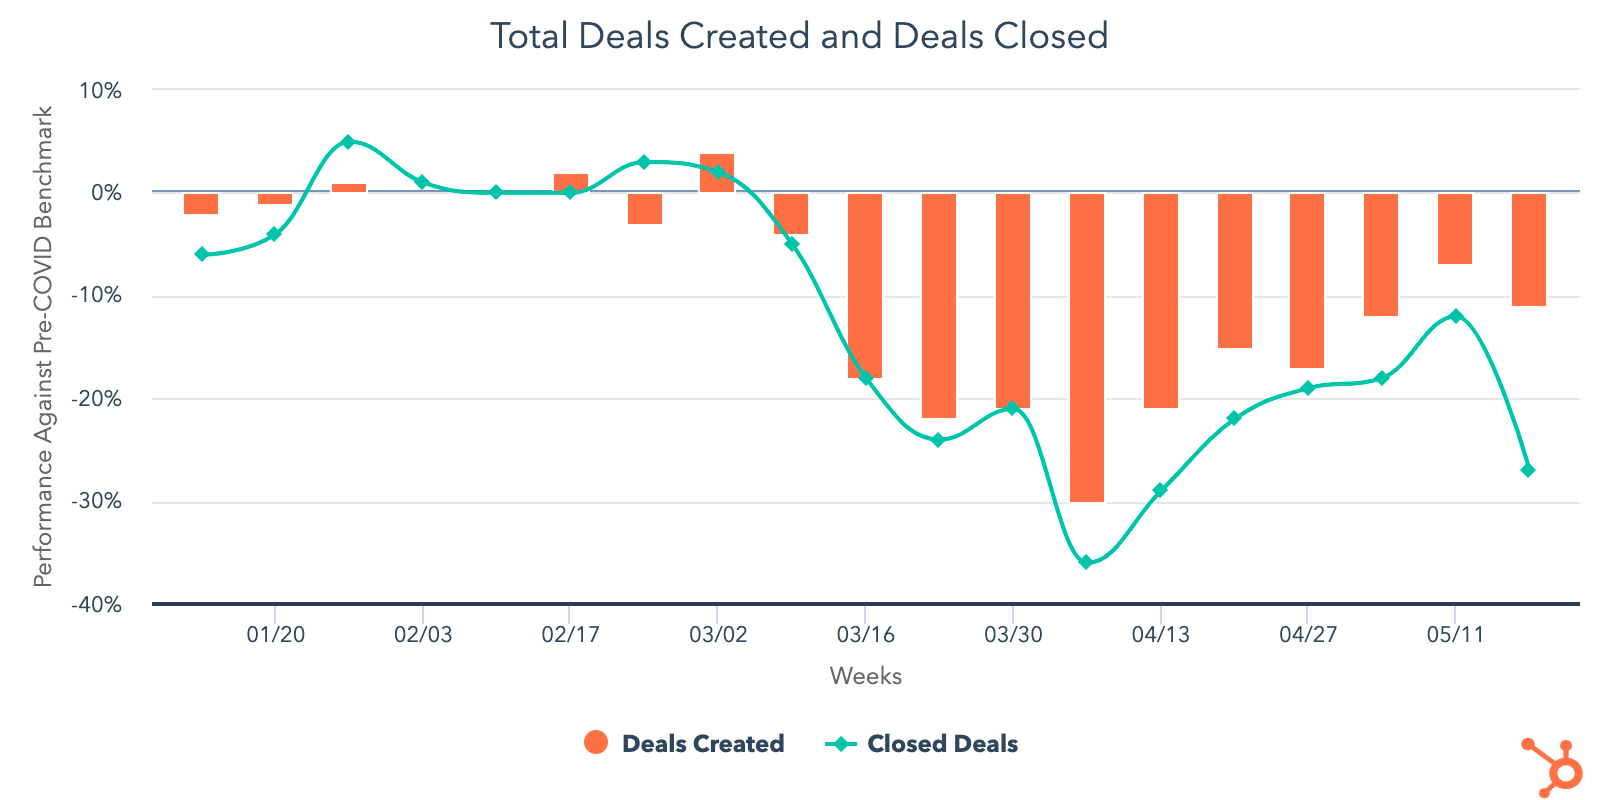 New Deals Created Closed